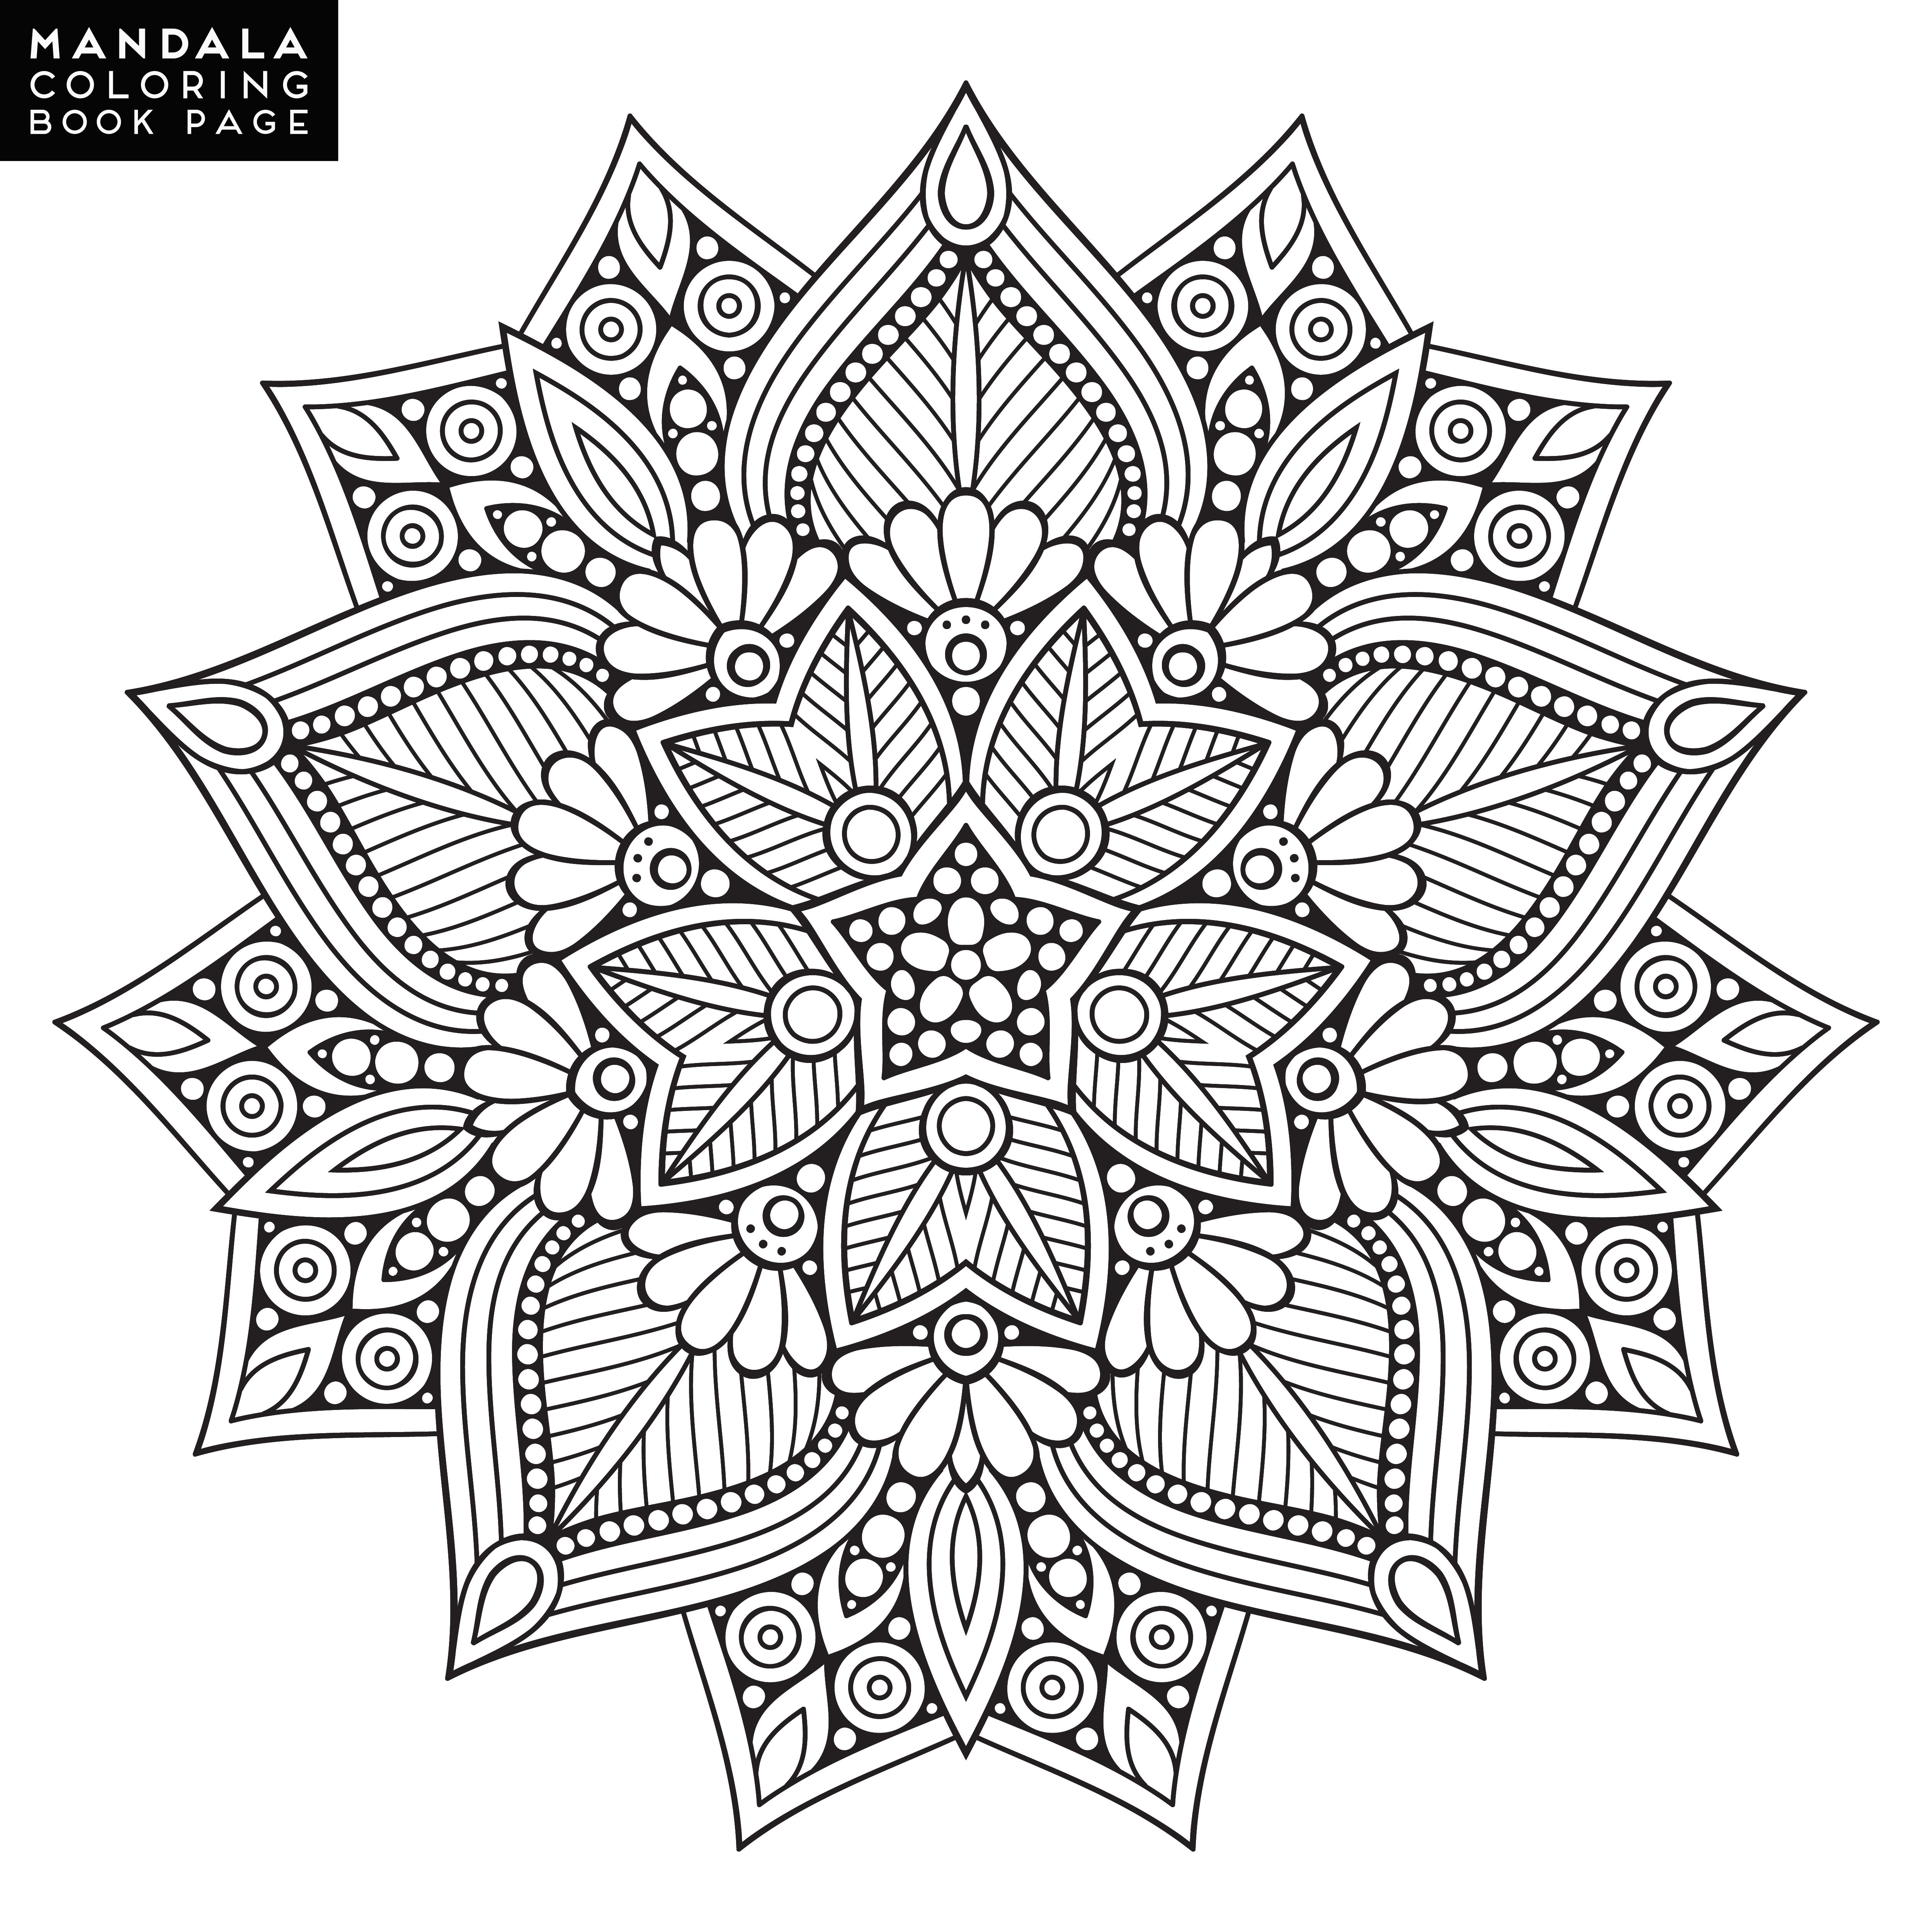 Download Outline Mandala For Coloring Book Decorative Round Ornament Anti Stress Therapy Pattern Weave Design Element Yoga Logo Background For Meditation P Mandala Coloring Pages Mandala Coloring Mandala Coloring Books